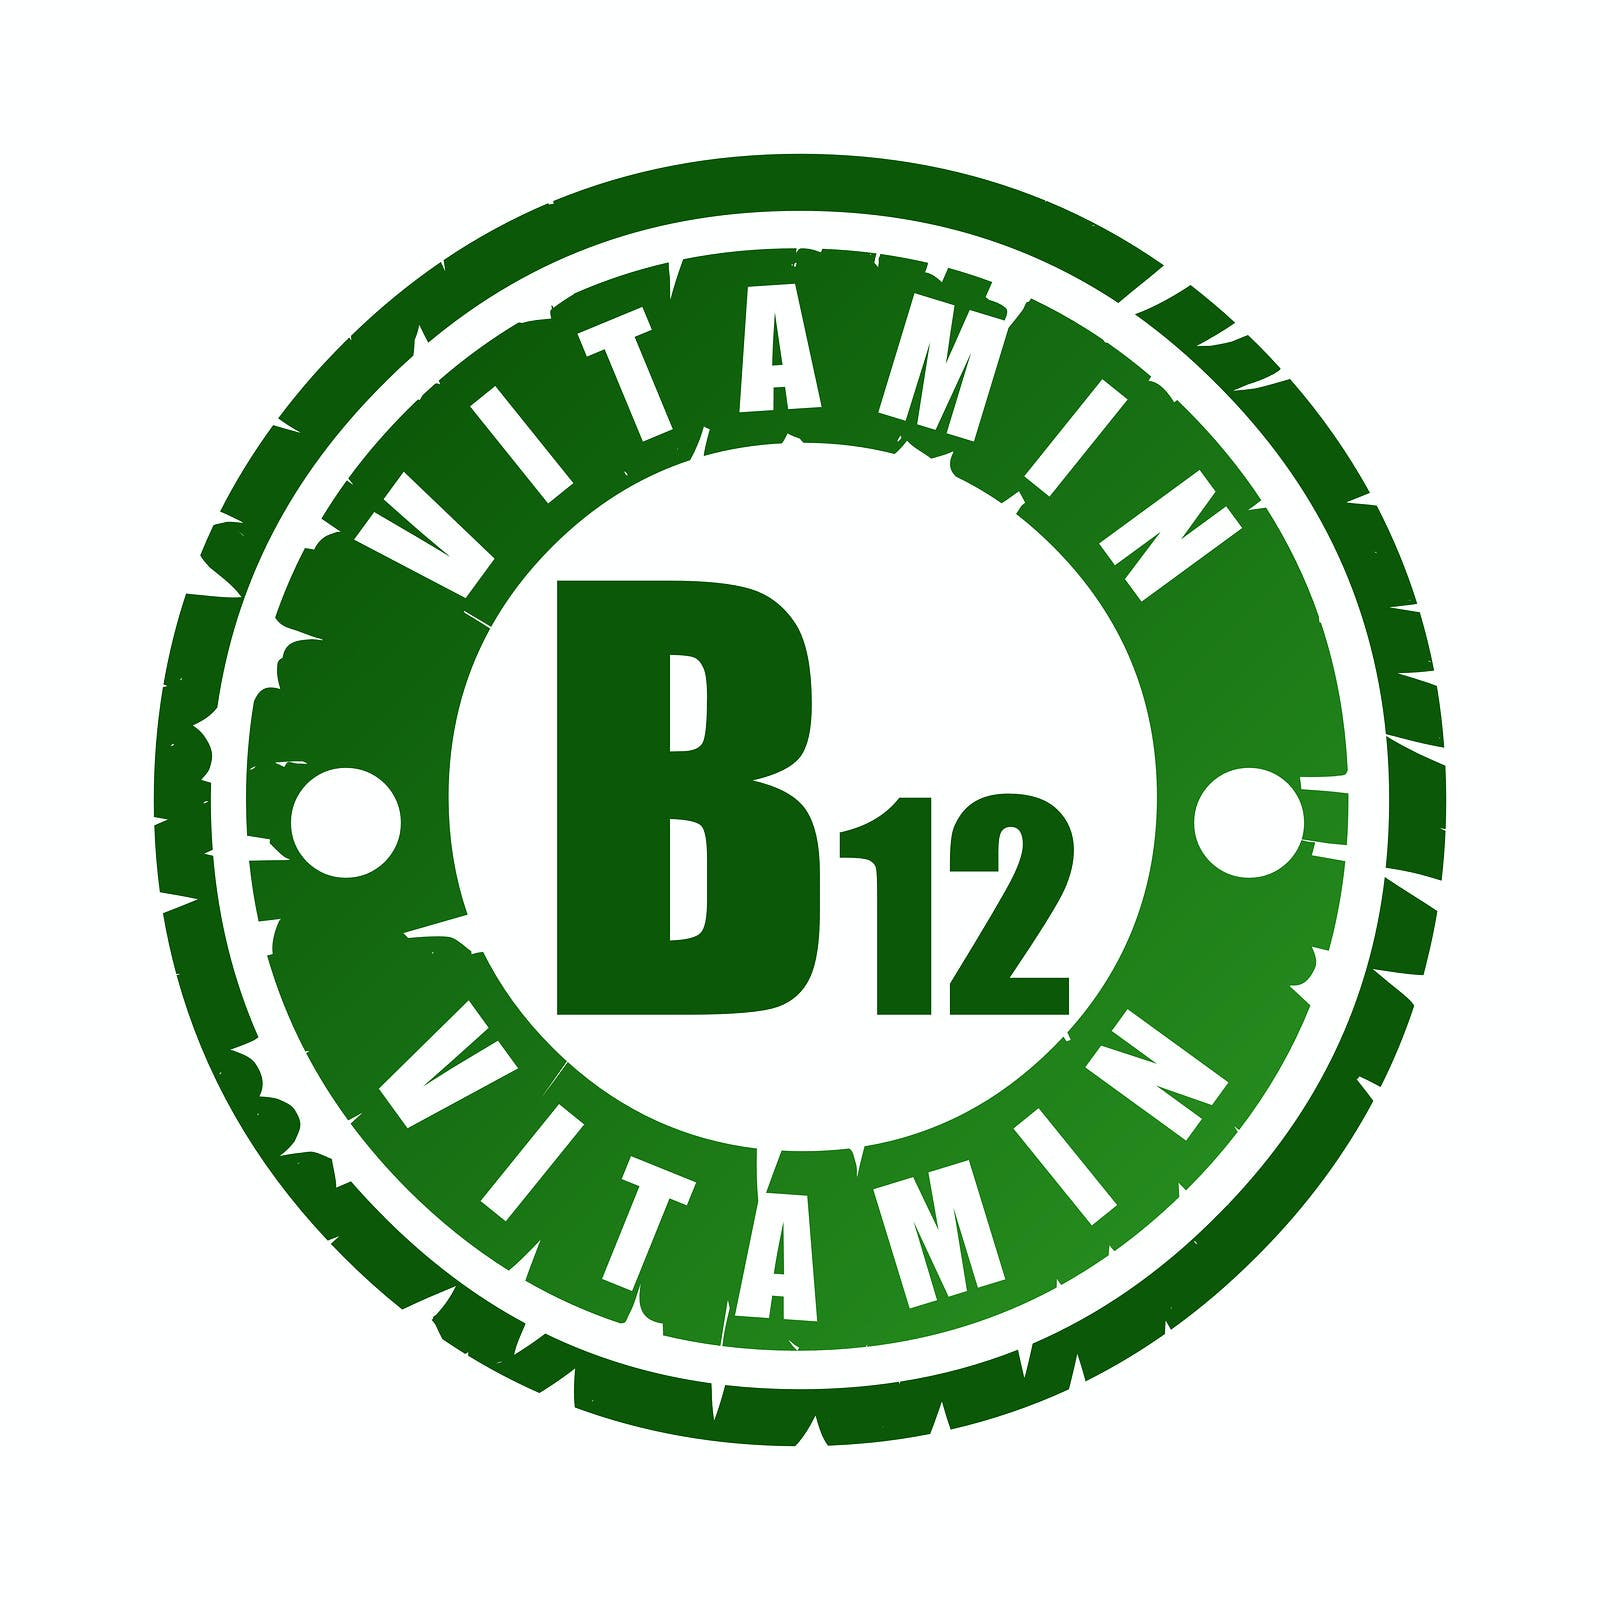 Green round rubber stamp with vitamin B12 text